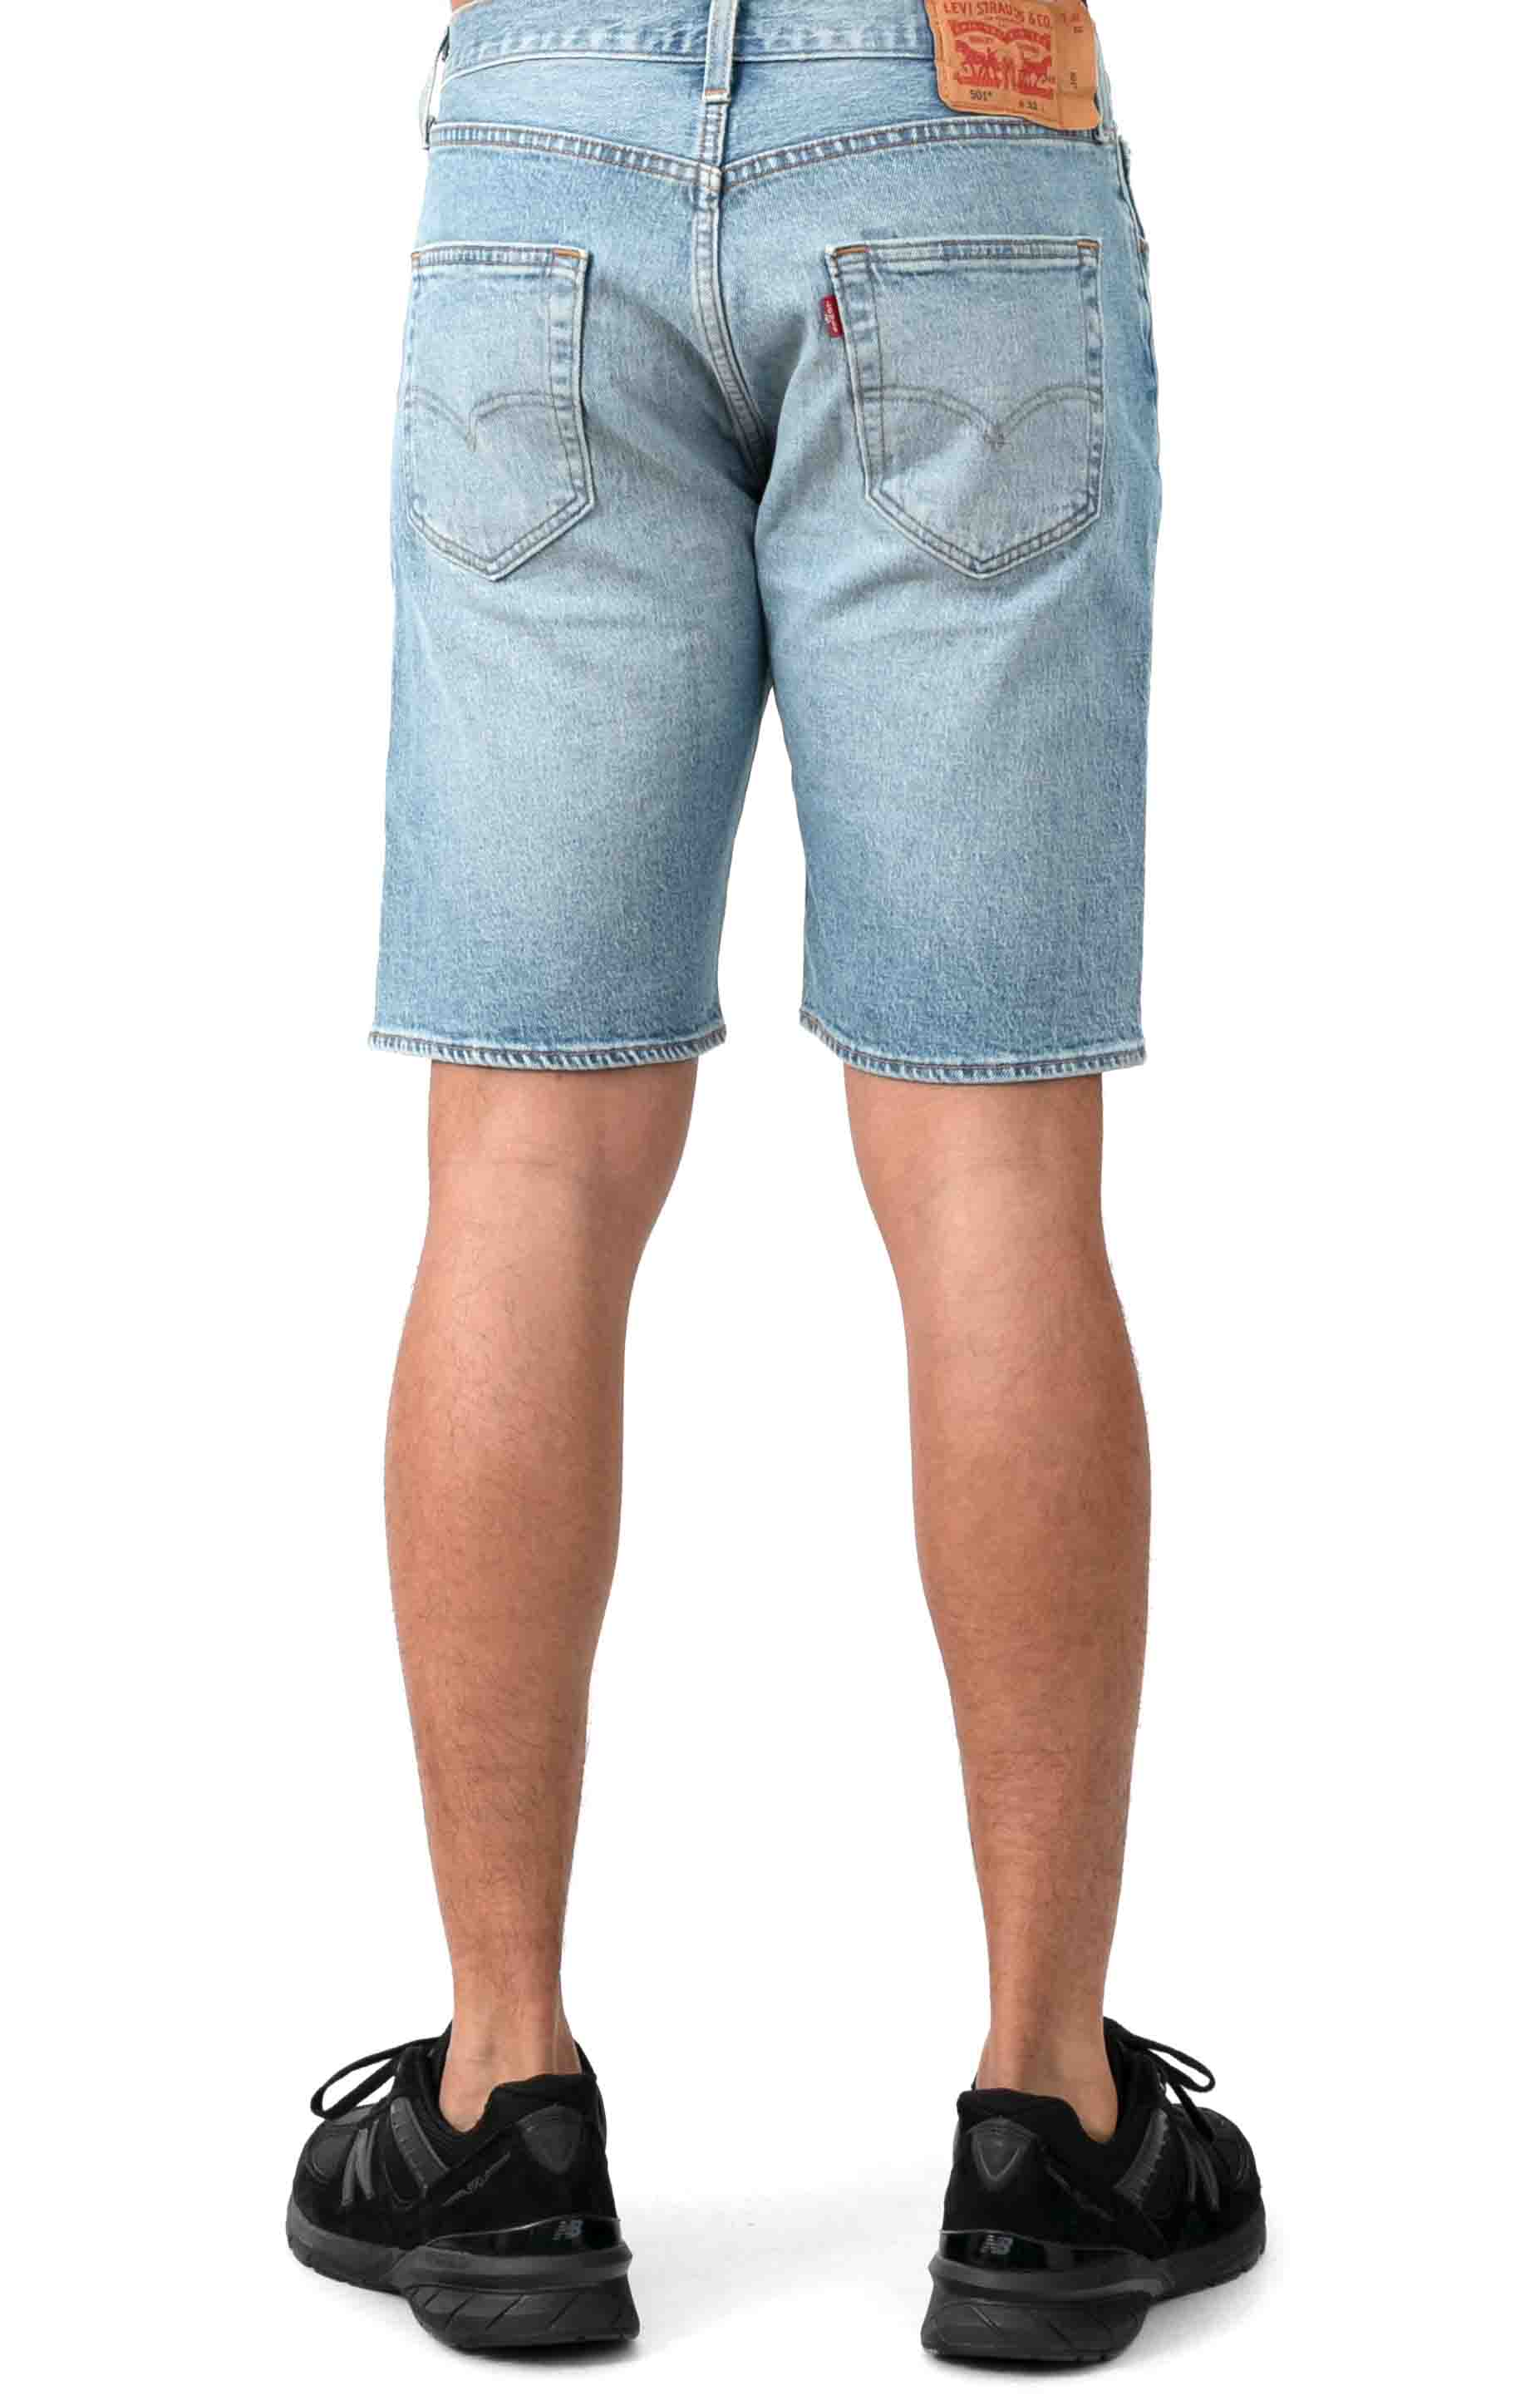 (36512-0100) 501 Hemmed 9 in. Shorts - Wild Boar Light Wash 3